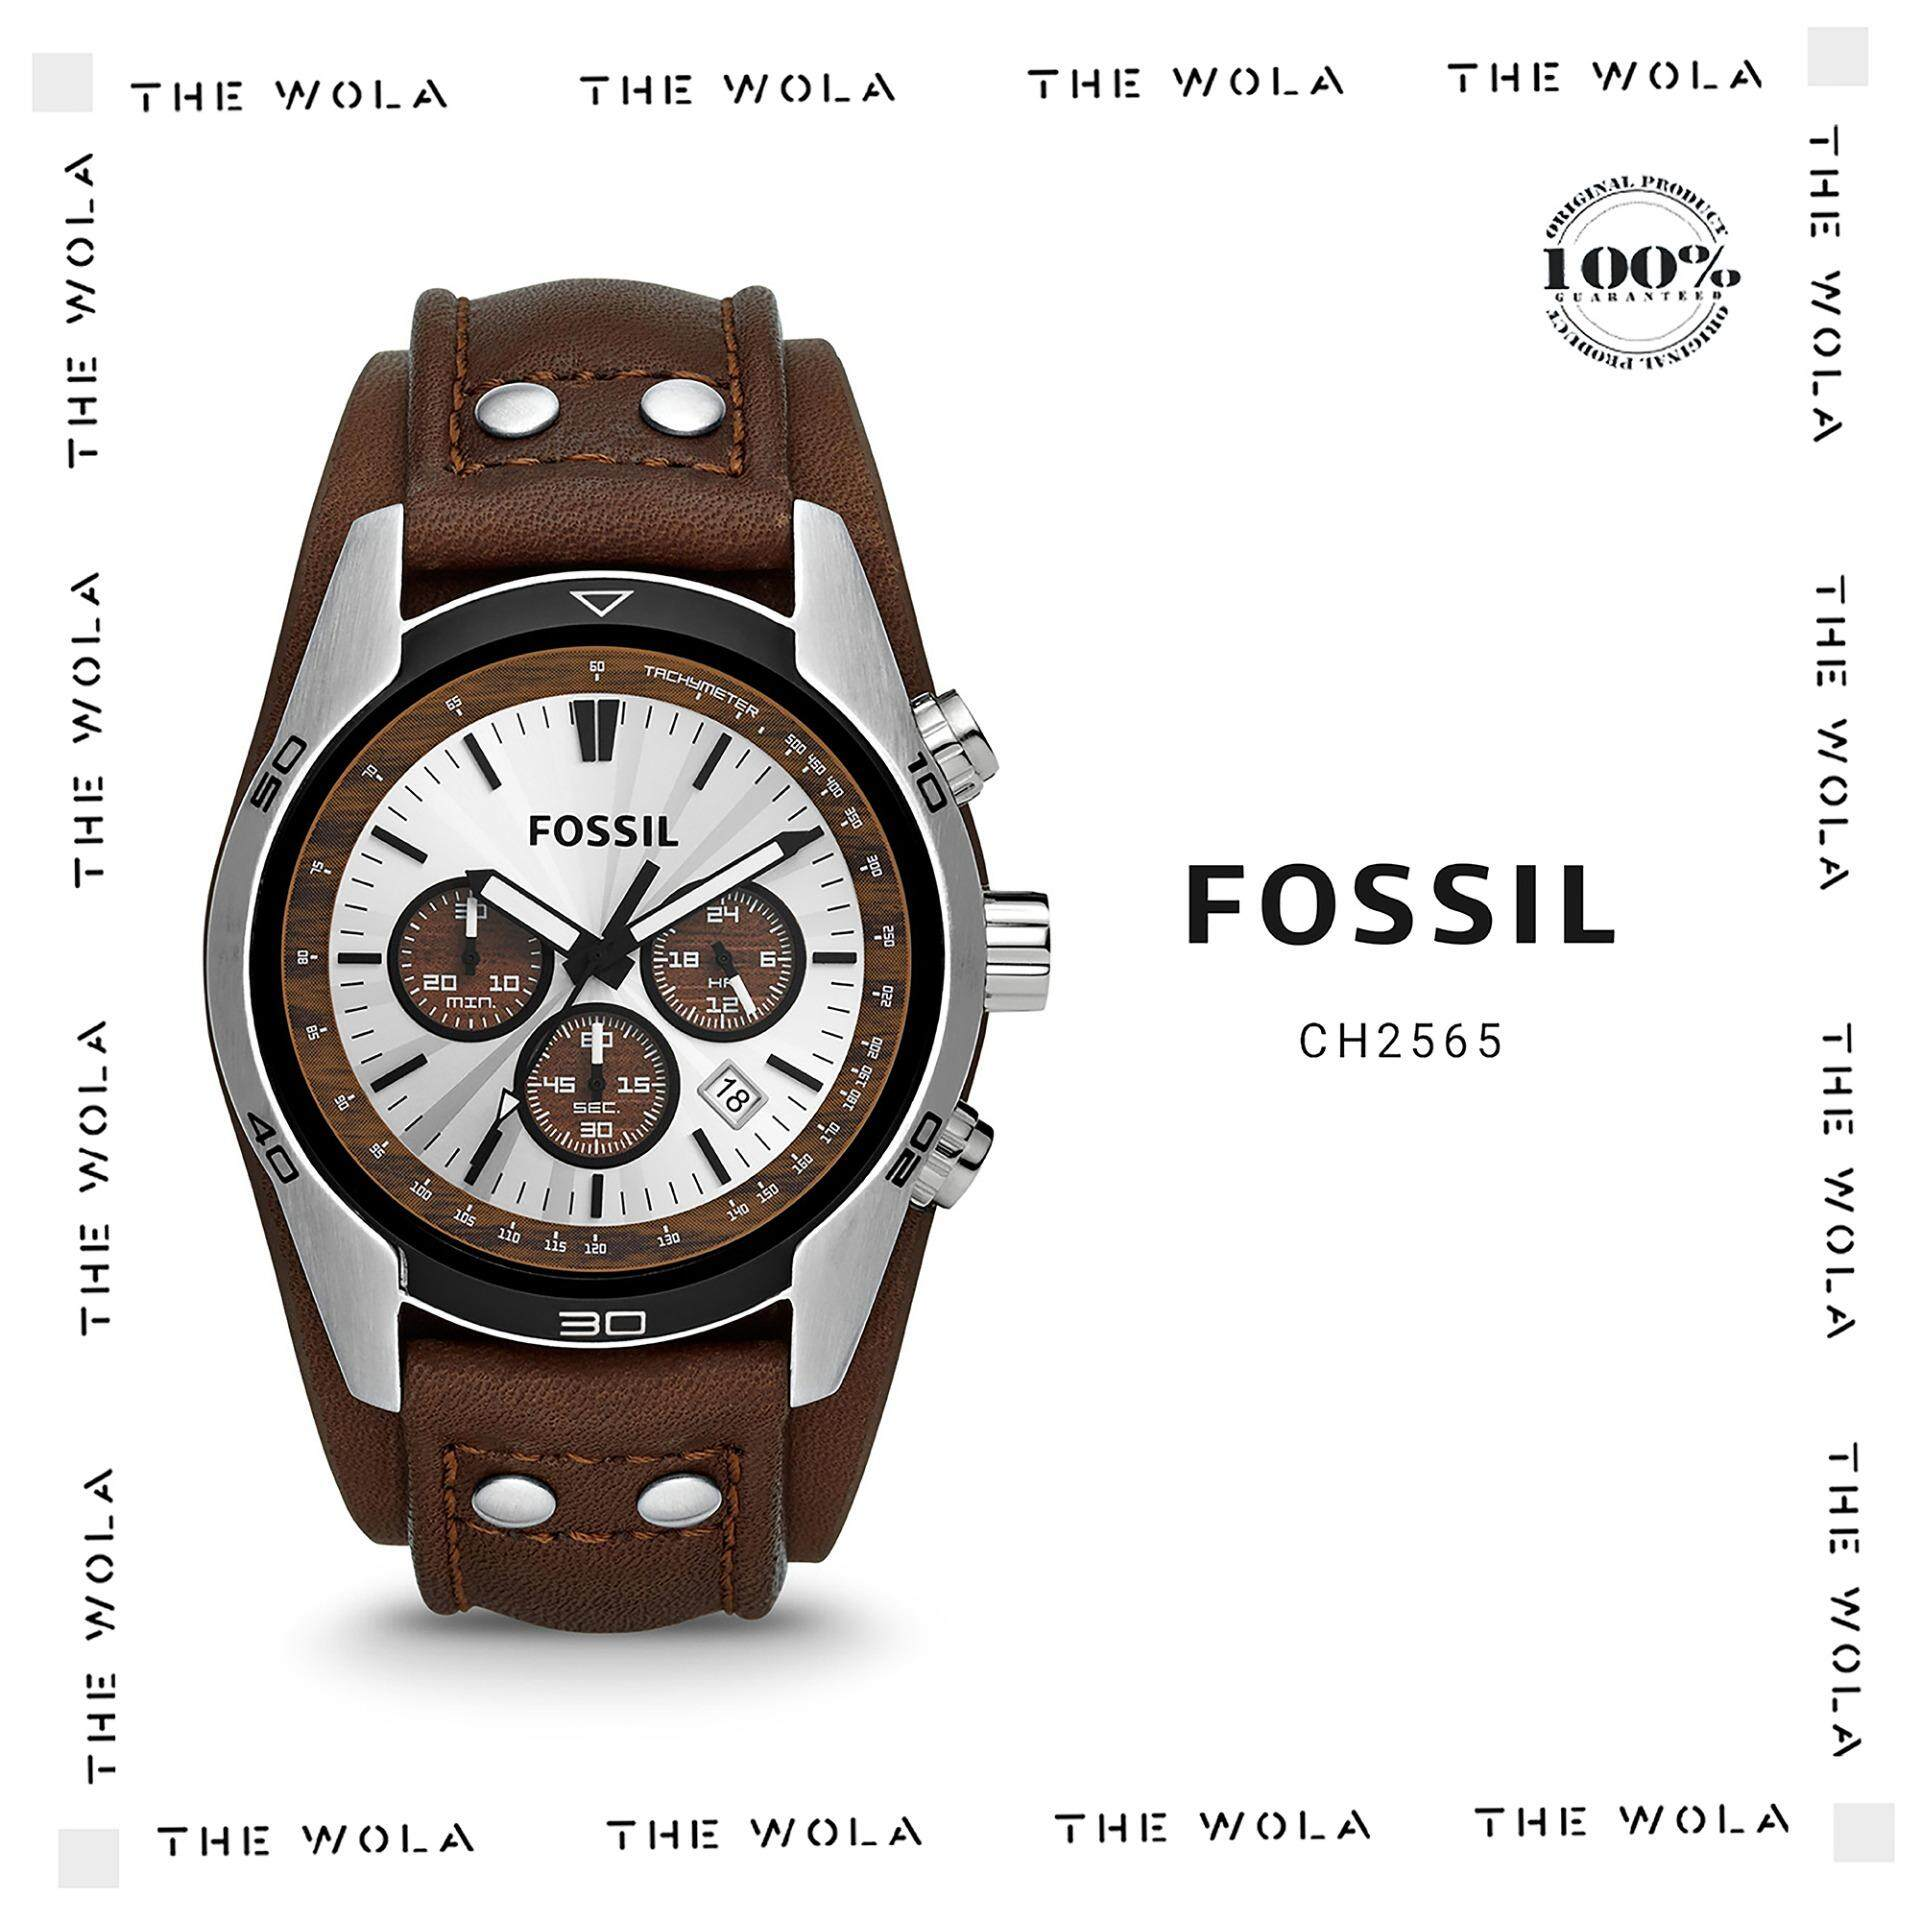 Fossil Watches Price In Malaysia Best Lazada Es3815 Jam Tangan Wanita Original Casual Men Watch Ch2565 Genuine 2 Years Warranty